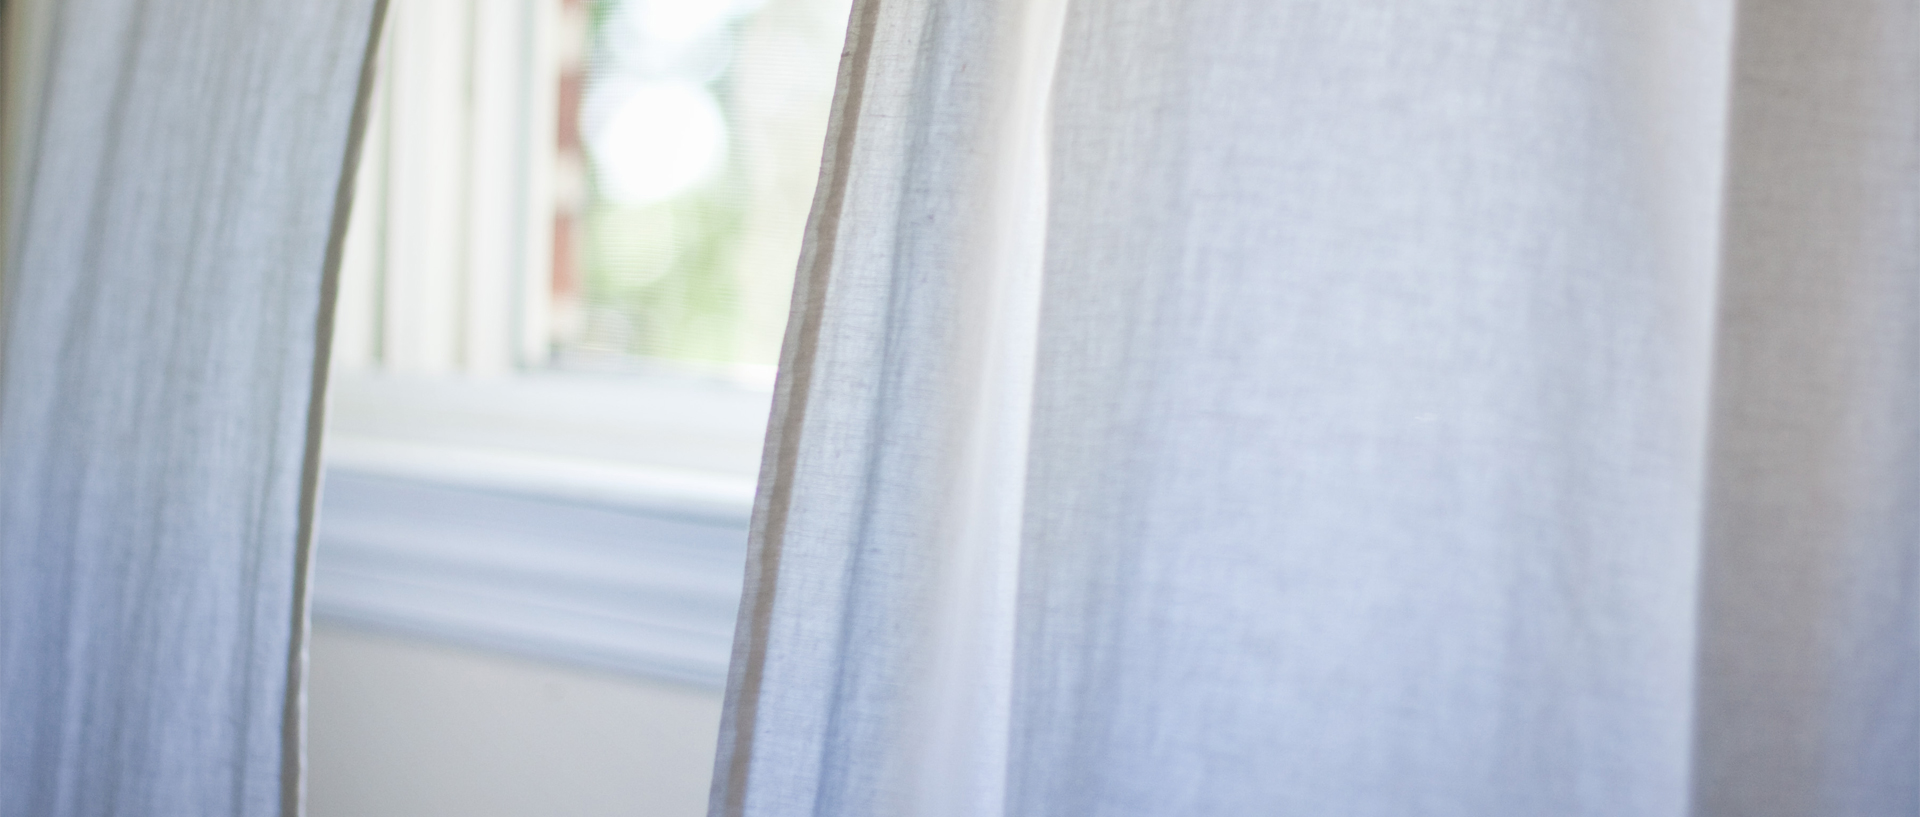 high chairs for small babies pottery barn charleston chair and a half slipcover how to clean your curtains - consumer reports